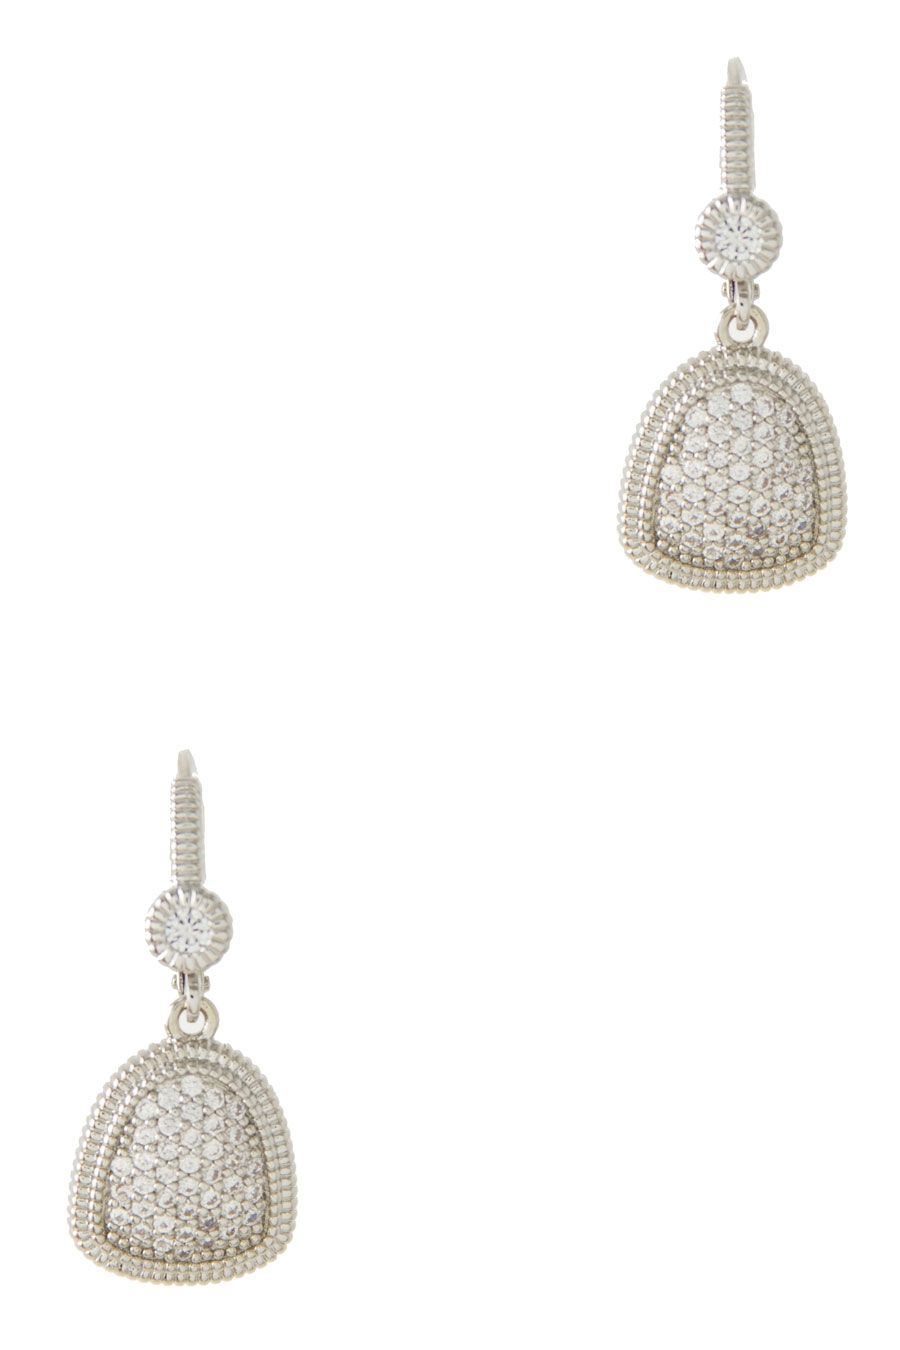 CRYSTAL PAVE DROP EARRING - orangeshine.com